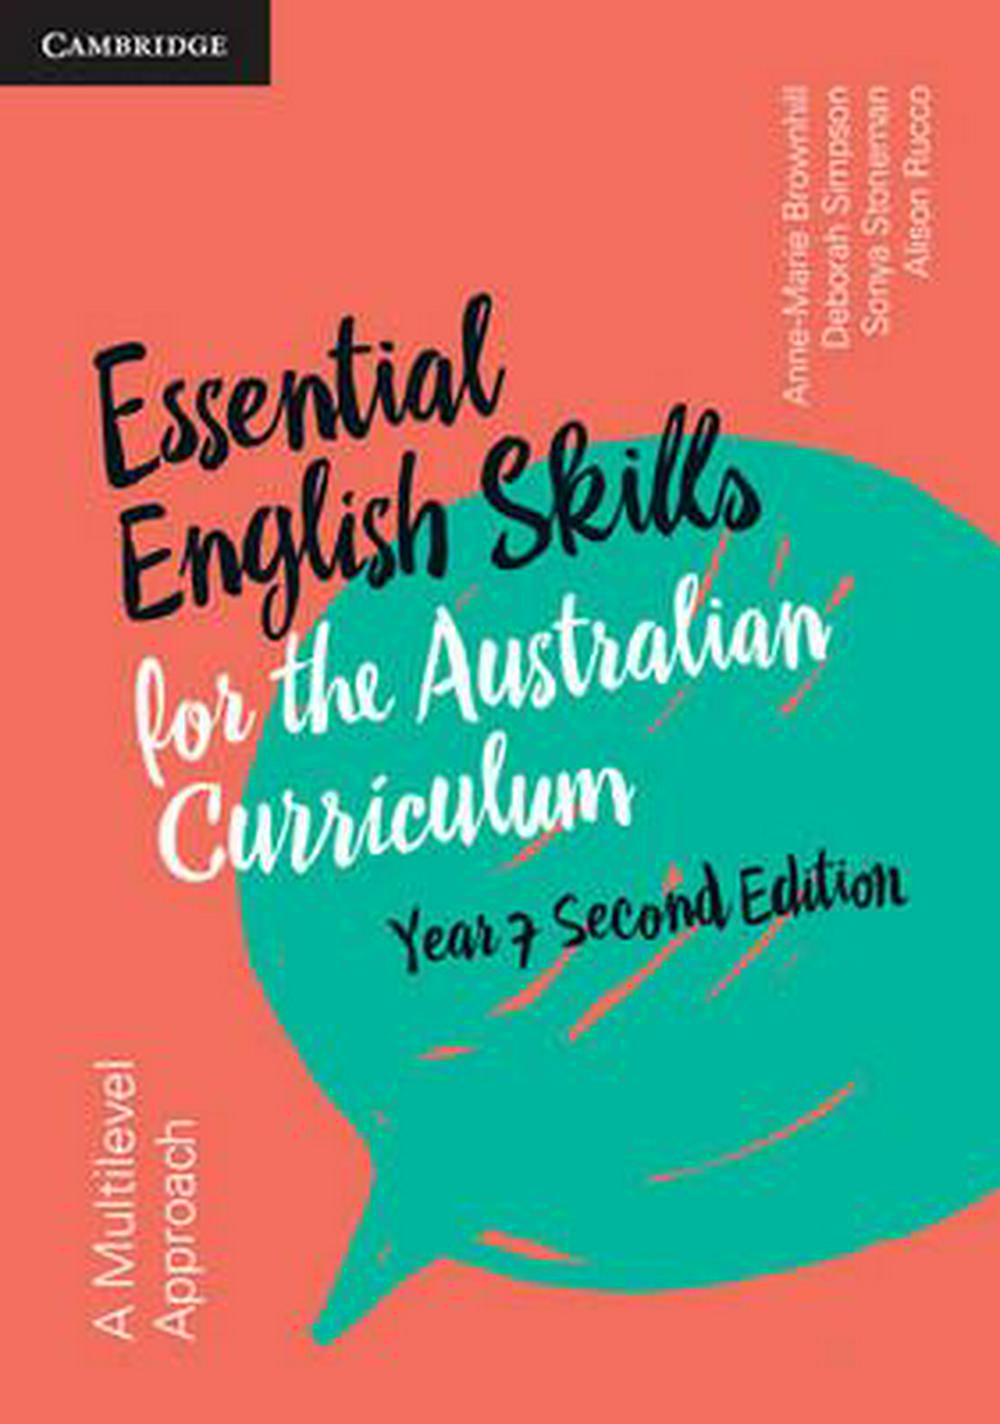 Essential English Skills for the Australian Curriculum Year 7A Multi-Level Approach